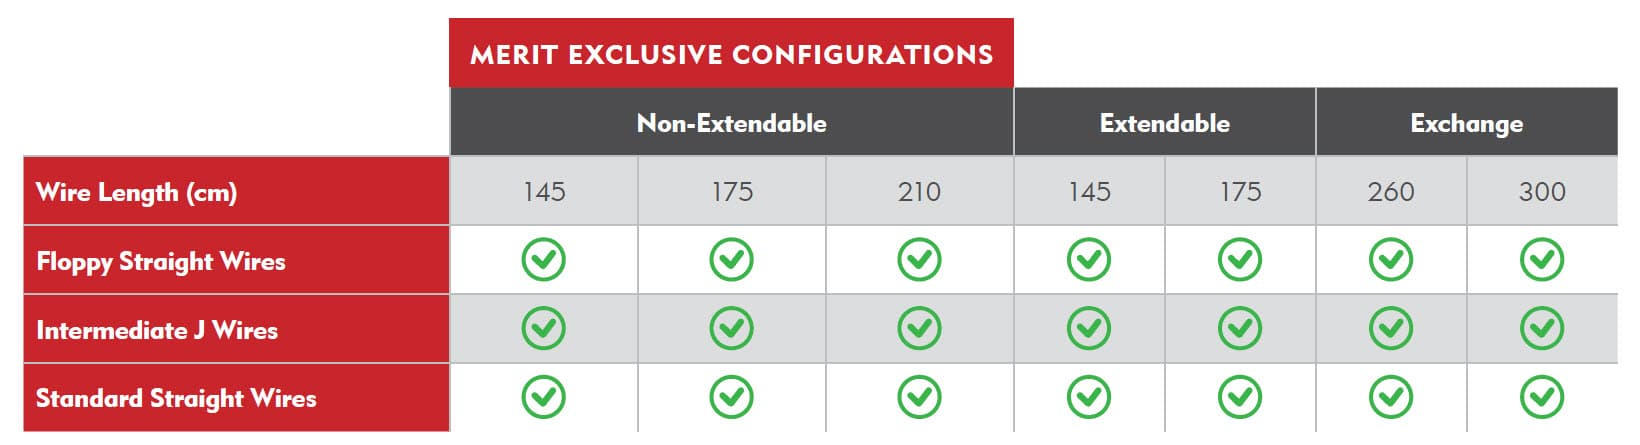 Exclusive Configurations Allow You to Reach Your Target In the Most Challenging Cases - GO2 Steerable Guide Wire - Merit Medical